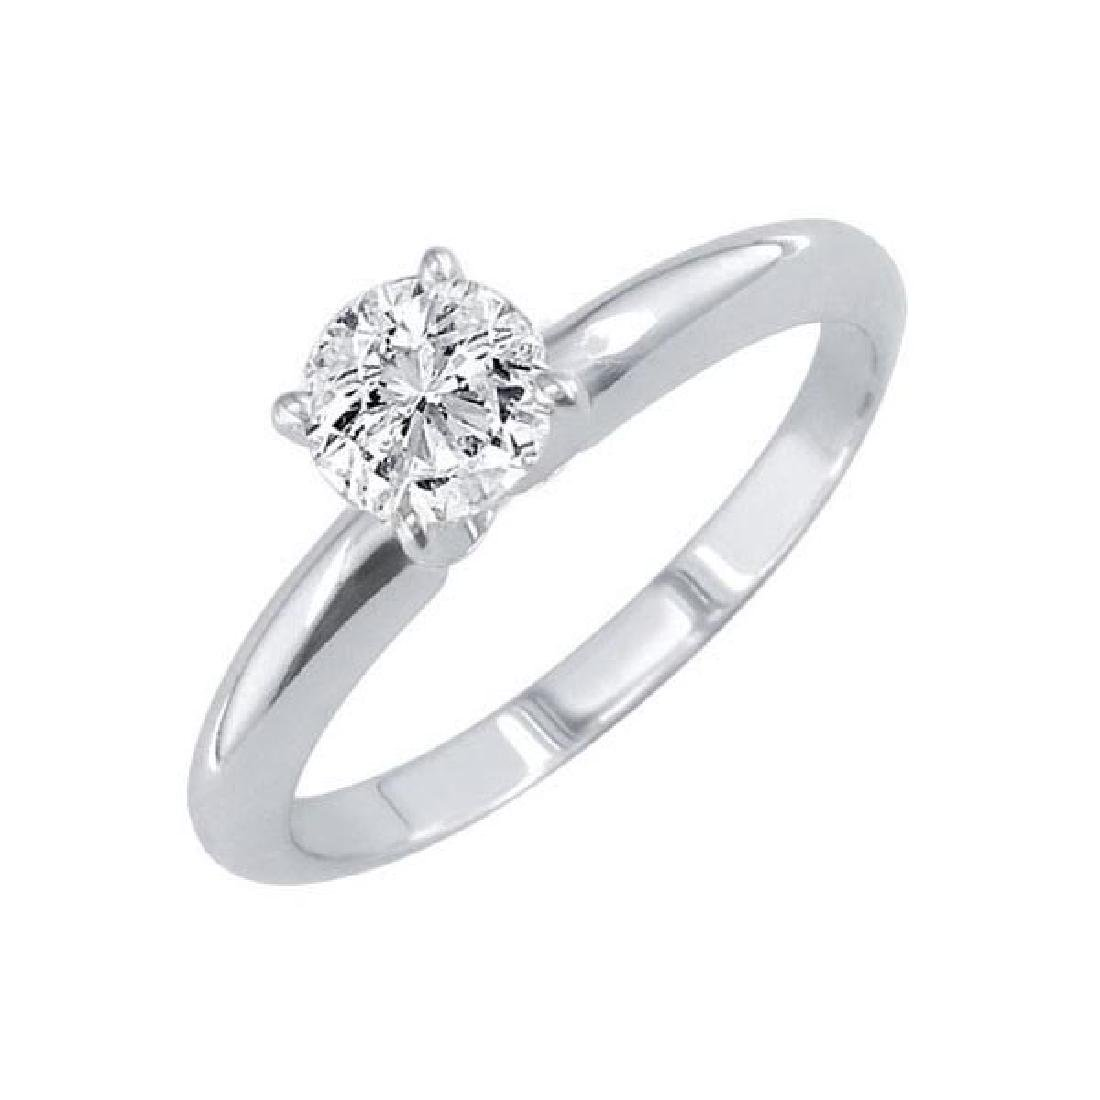 Certified 1.27 CTW Round Diamond Solitaire 14k Ring D/S